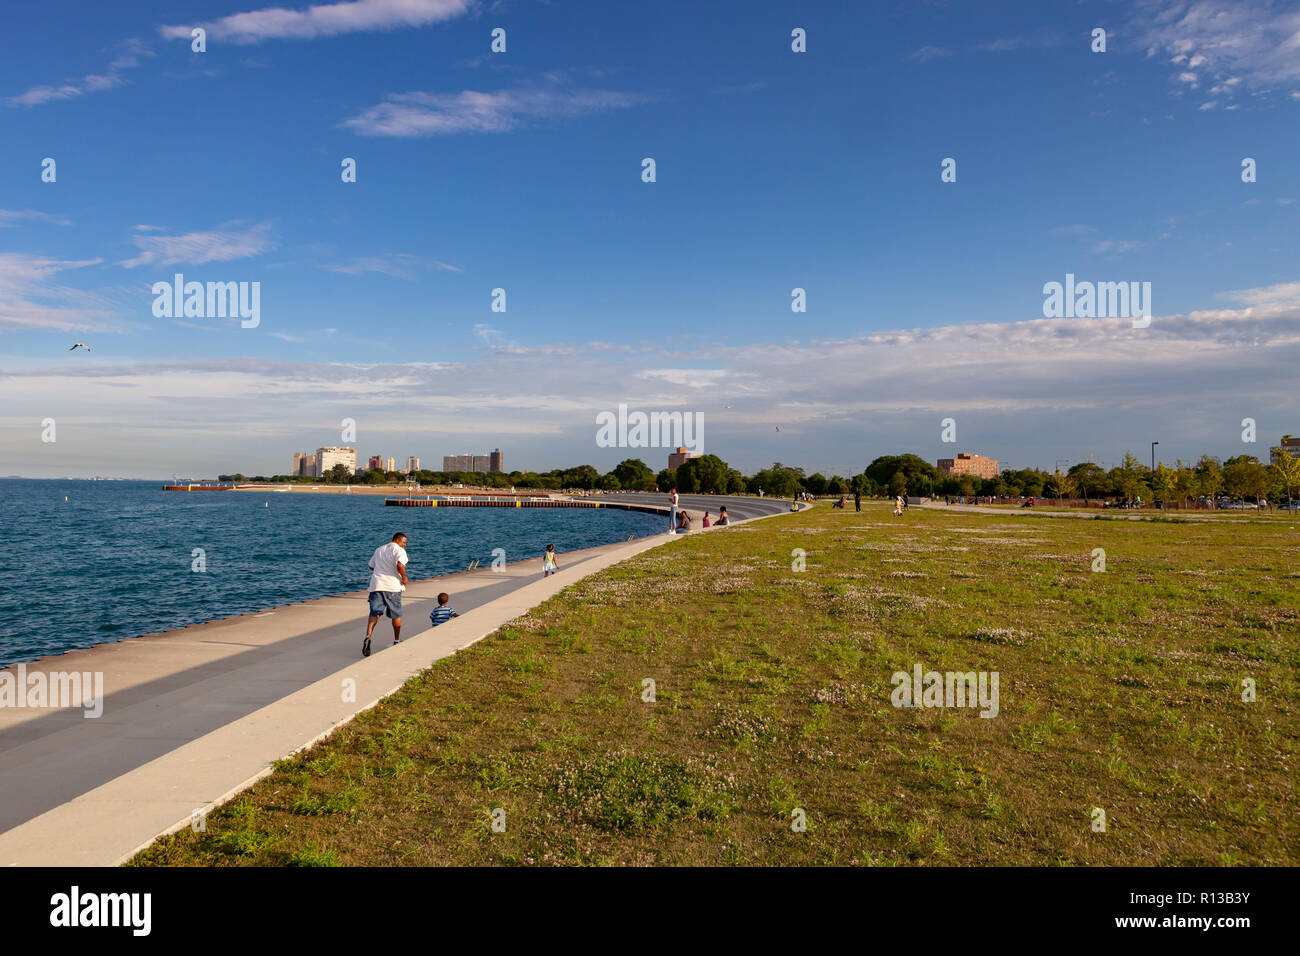 Jogging at Lake Michigan lakefront on the South Side of Chicago, Illinois. - Stock Image